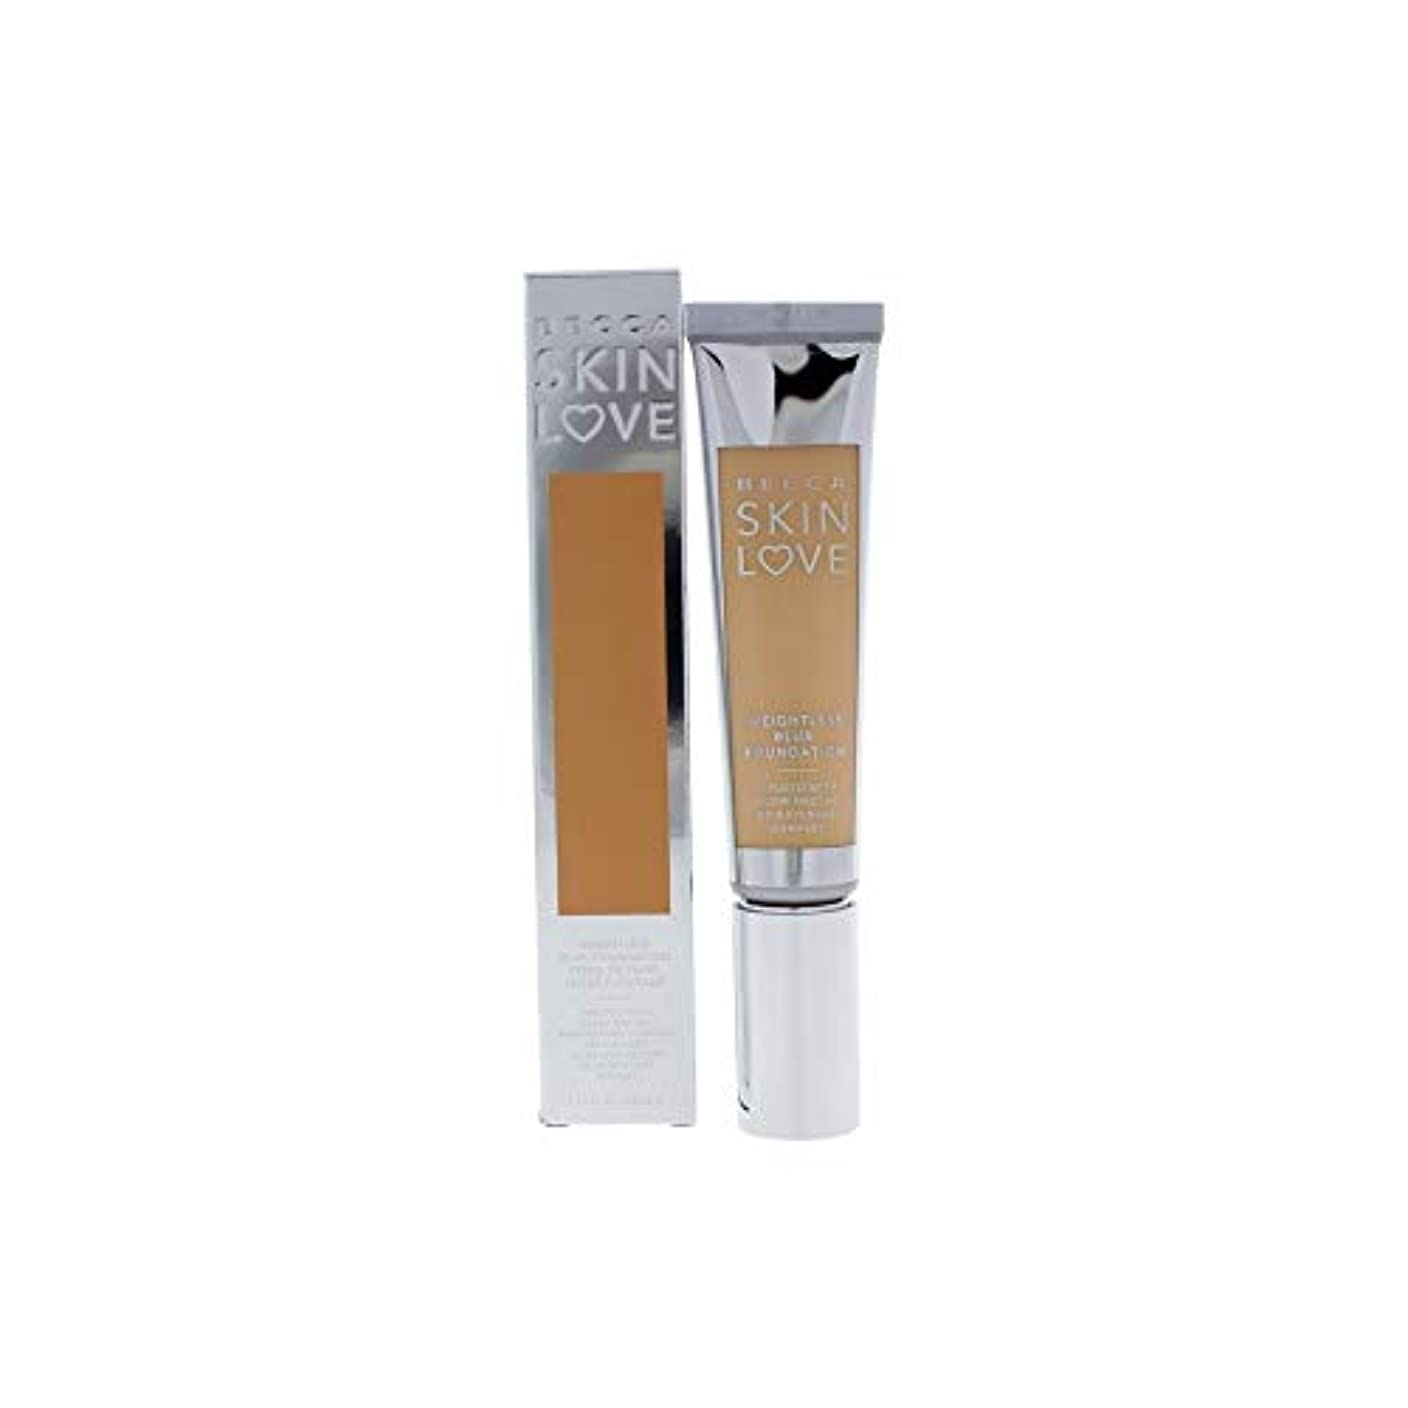 アイデア象トーストベッカ Skin Love Weightless Blur Foundation - # Vanilla 35ml/1.23oz並行輸入品